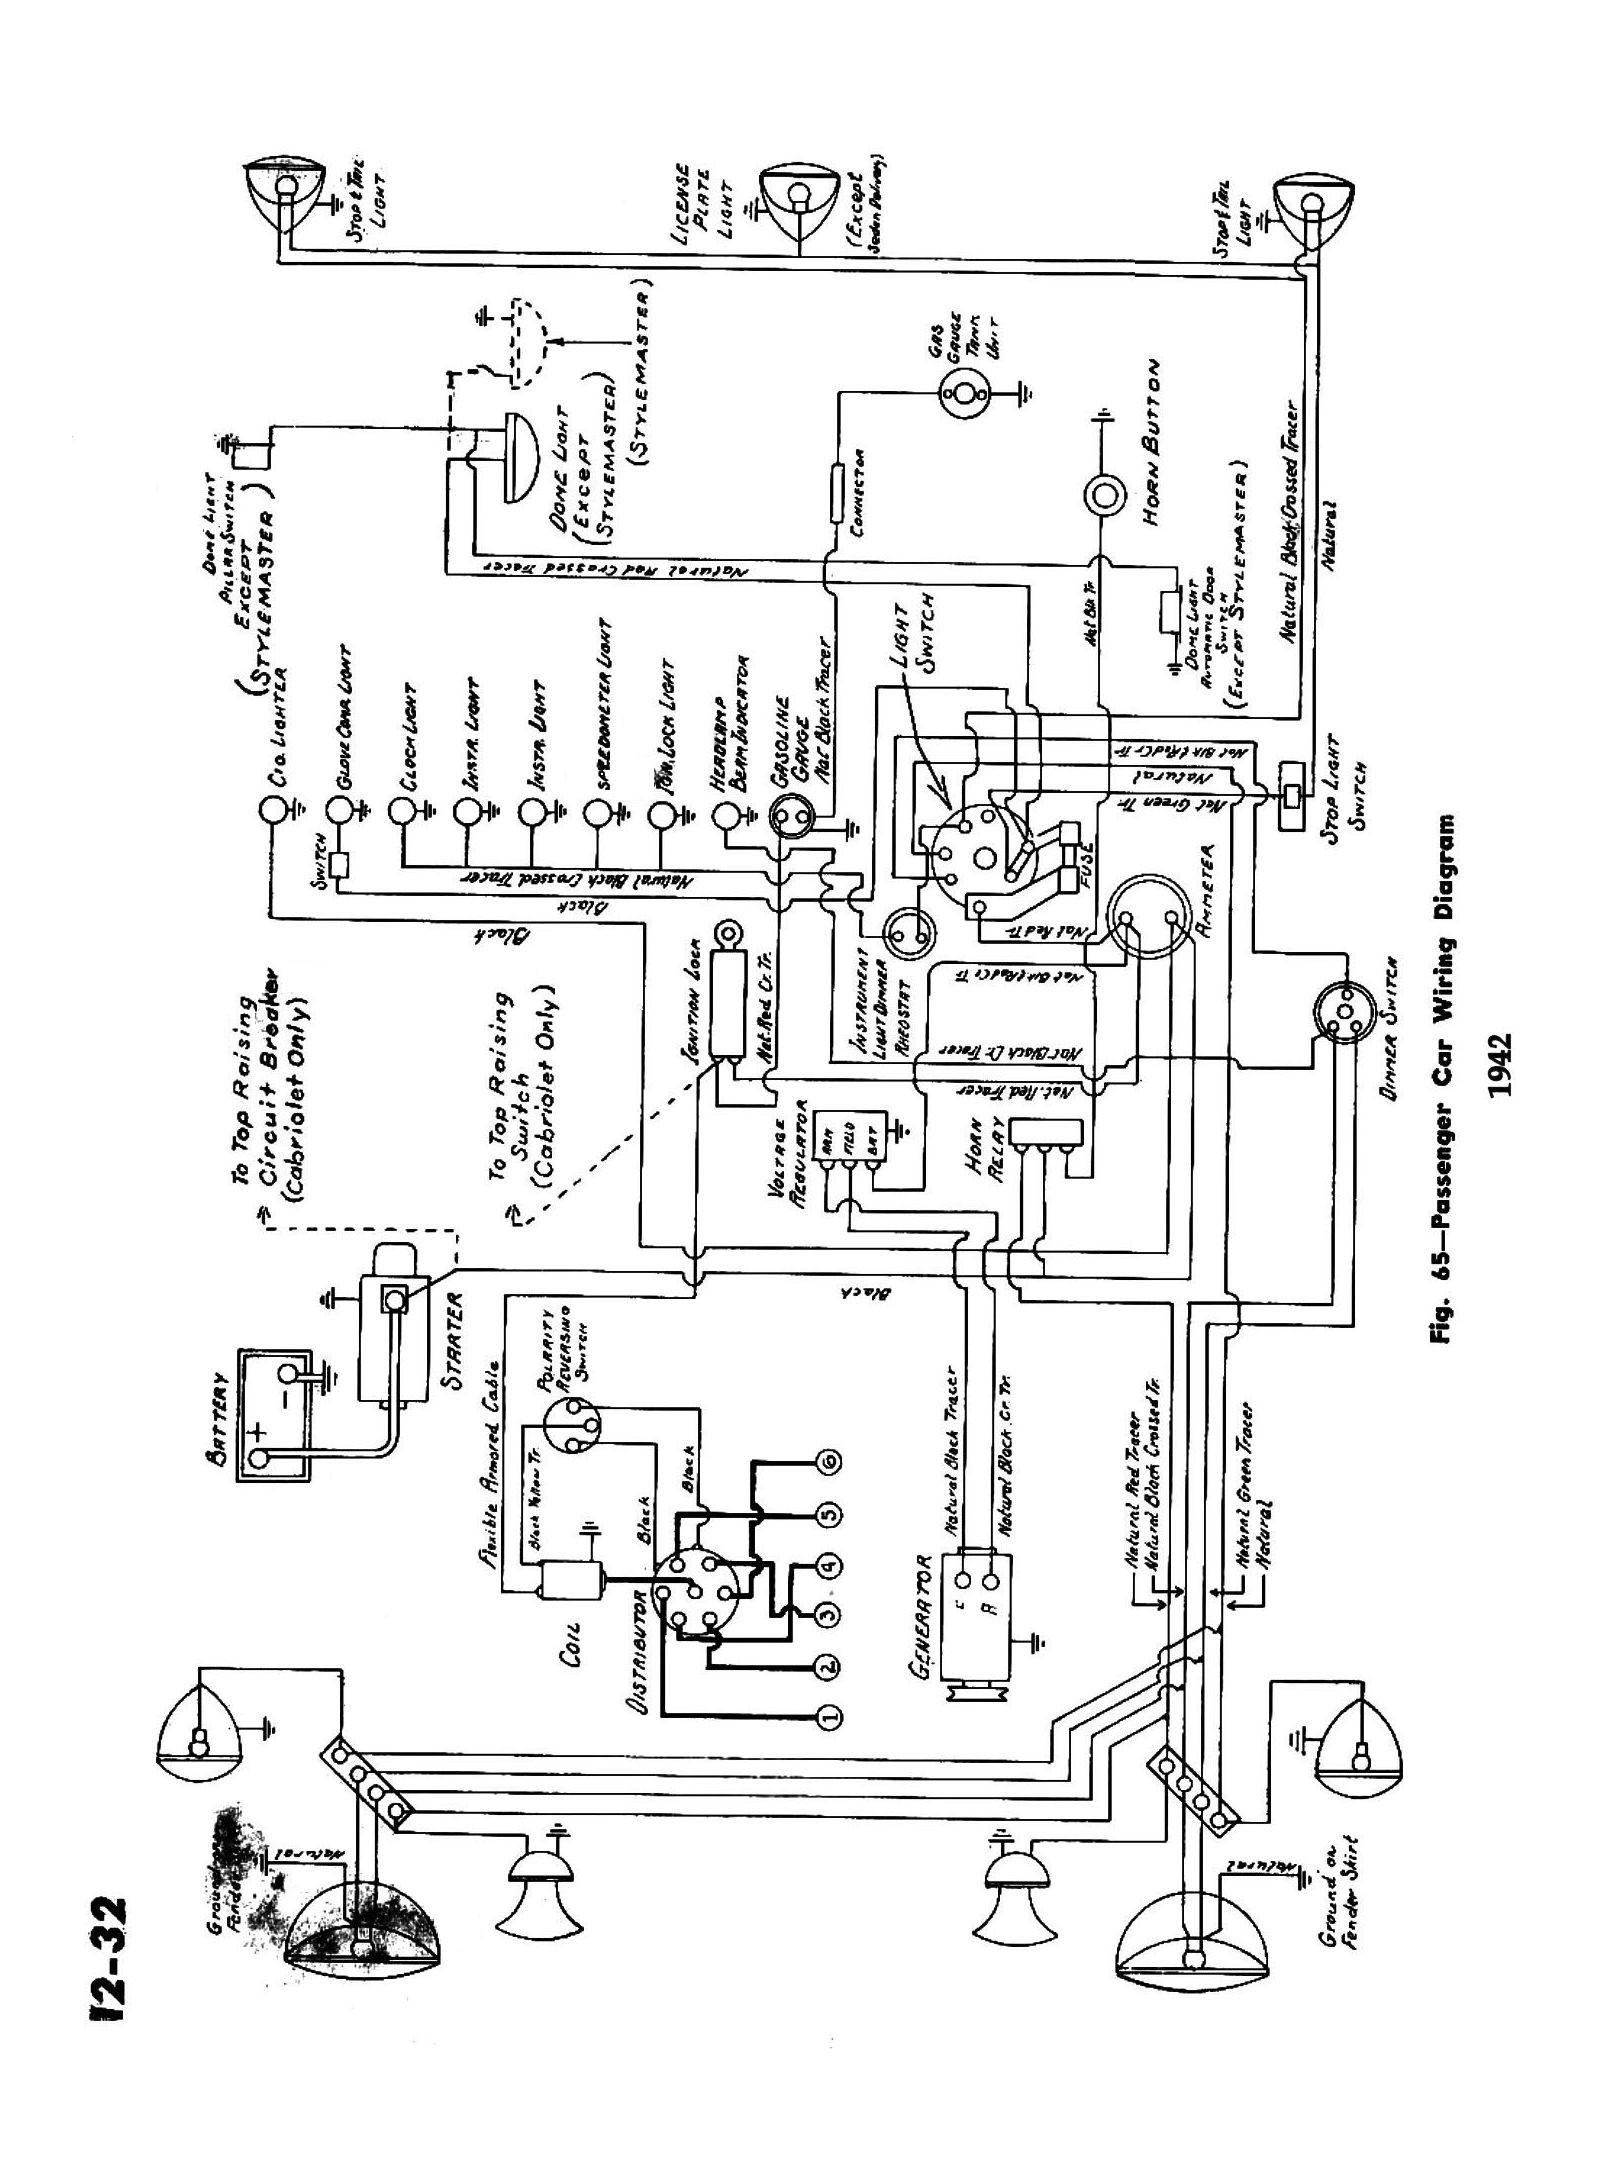 hight resolution of 1940 dodge ignition wiring simple wiring schema 1940 buick wiring diagram 1940 dodge wiring diagram